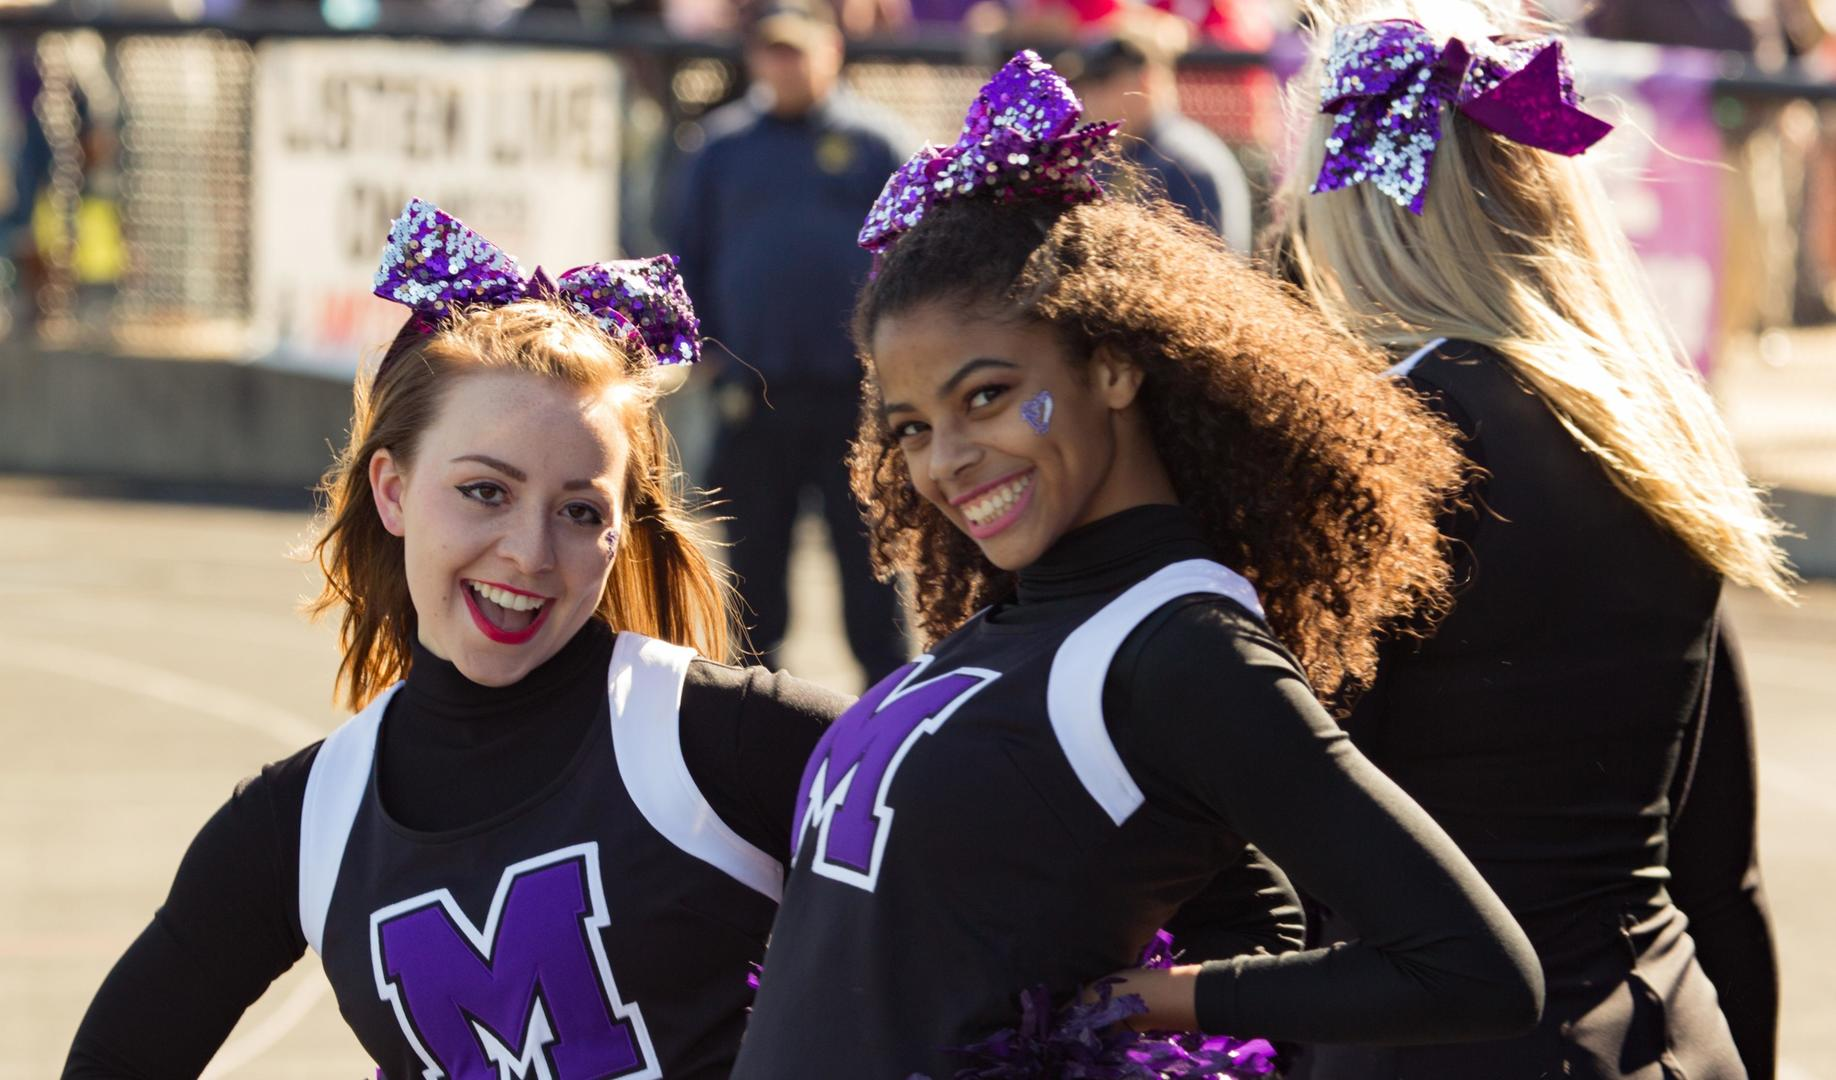 Mount Union cheerleaders on the sidelines during a football game